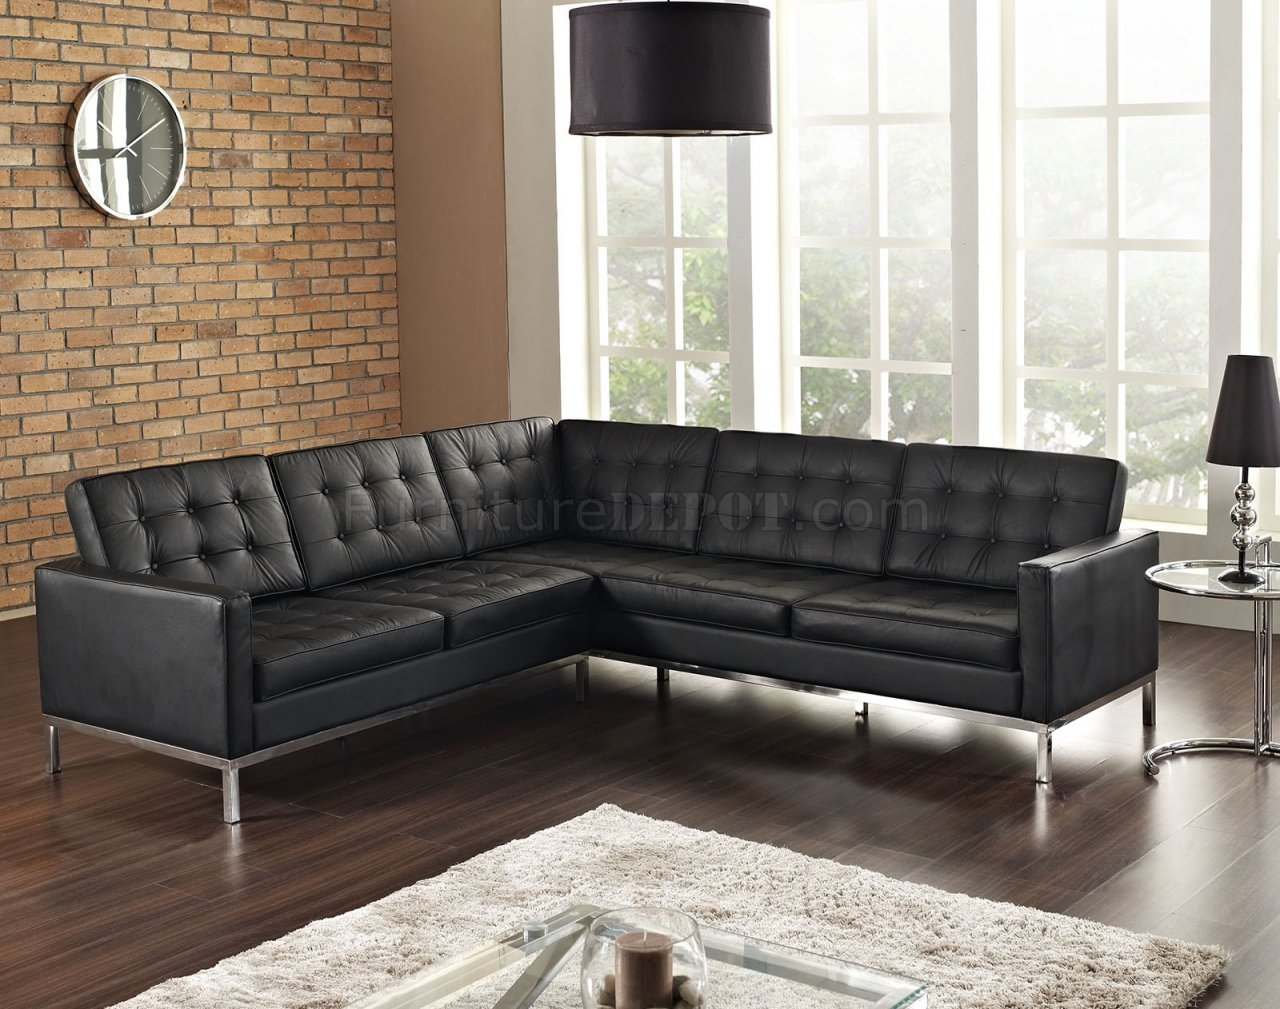 Loft LShaped Sectional Sofa in Black Leather by Modway